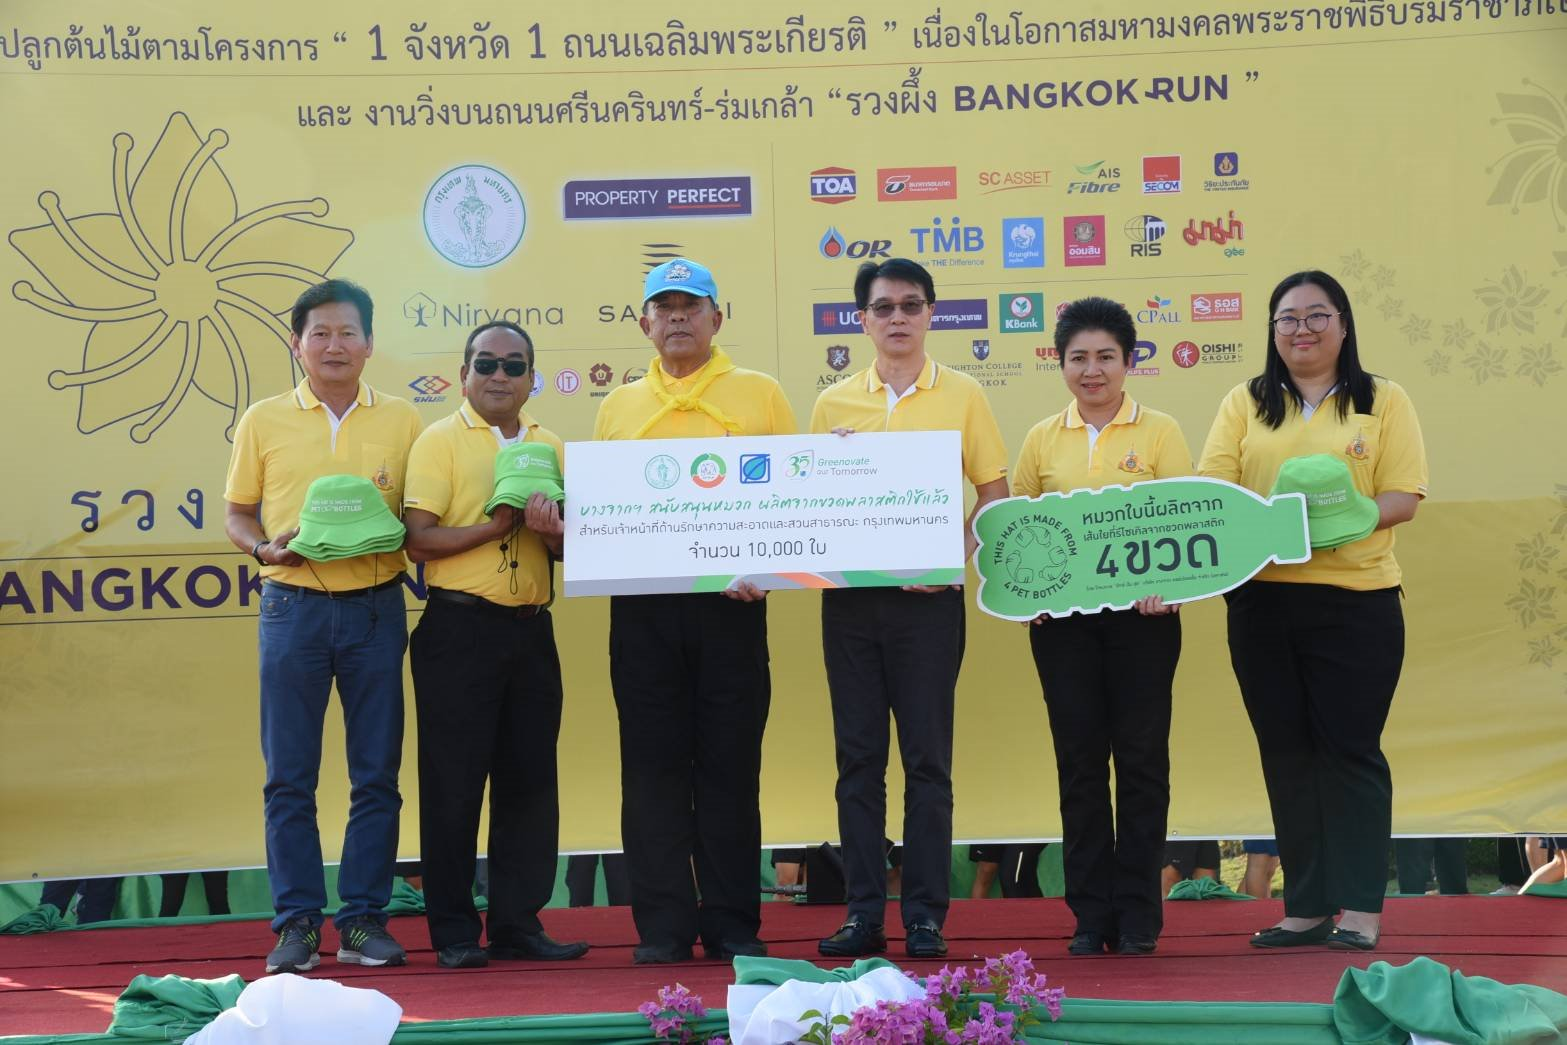 Bangchak Donates Hats Made from PET Bottles, Plants Trees in Honor of King